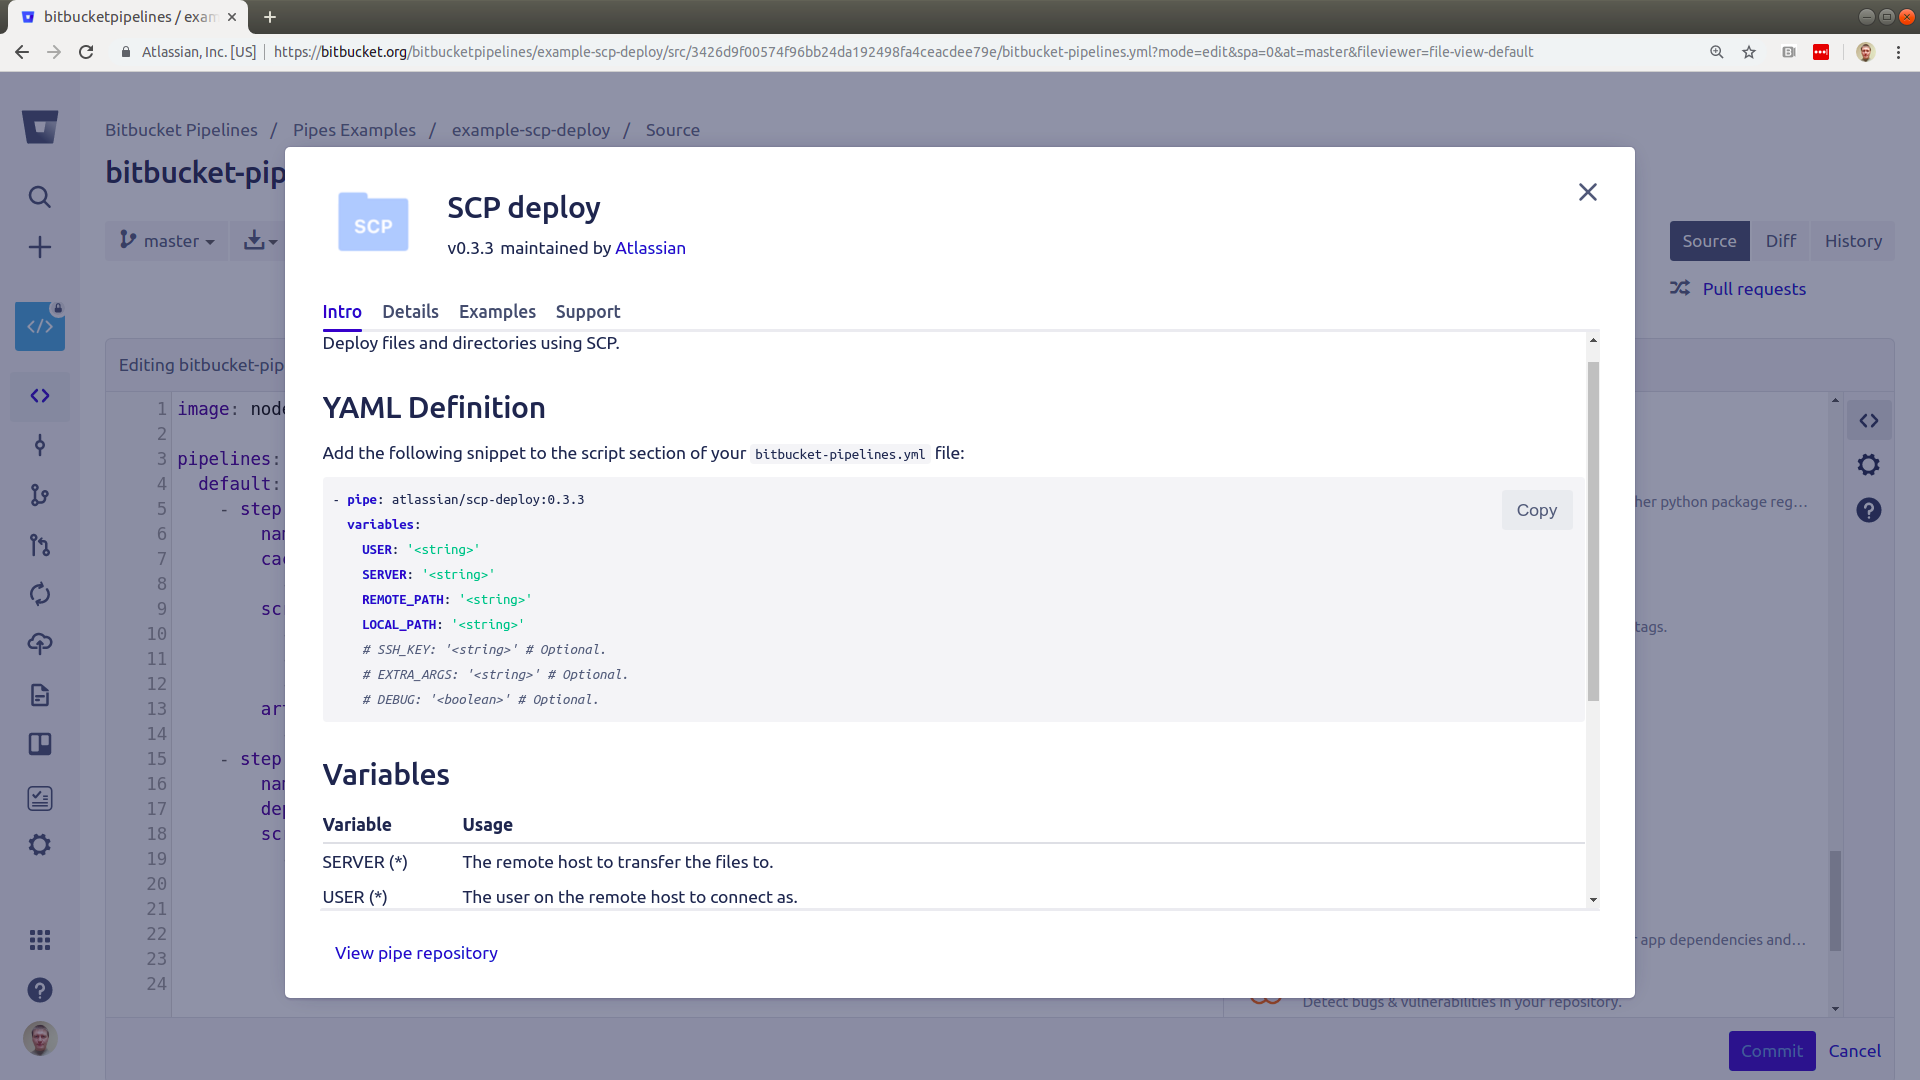 Deploy using SCP - Atlassian Documentation